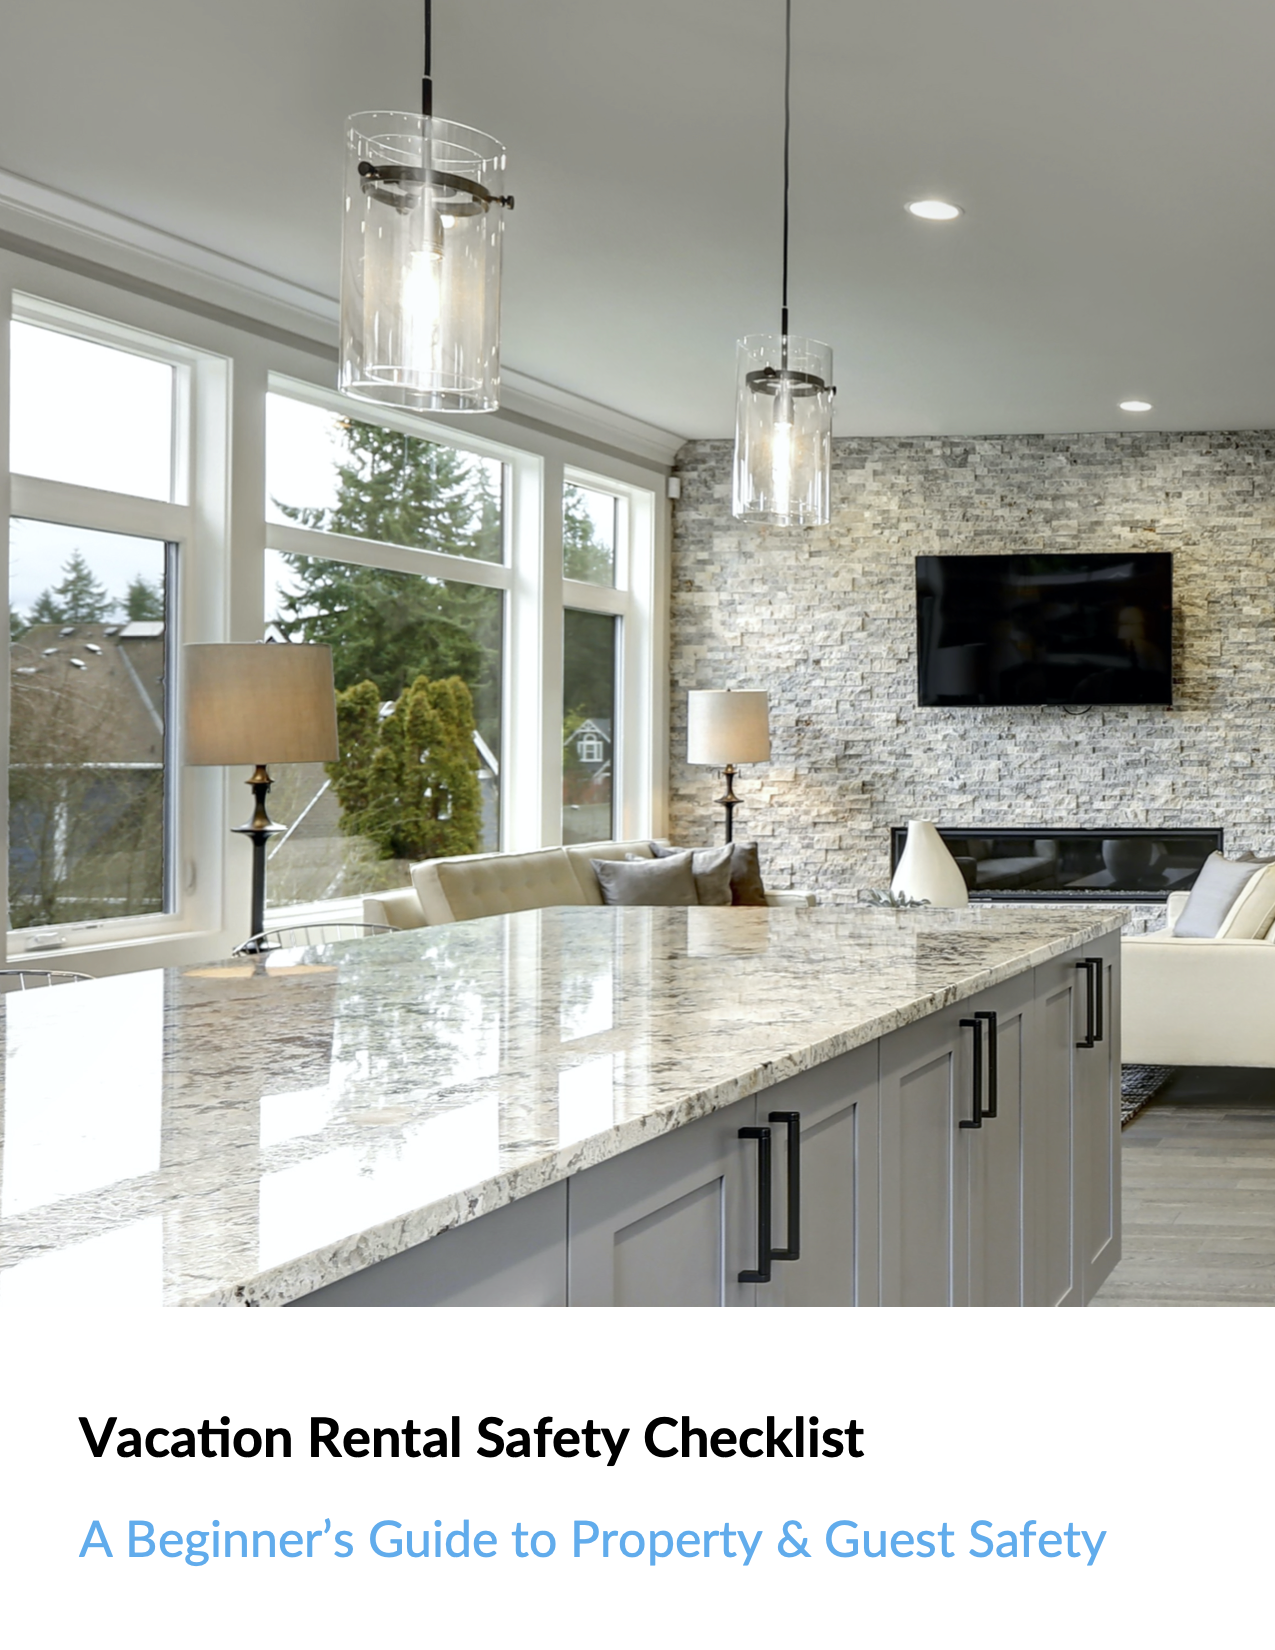 Vacation Rental Safety Guide